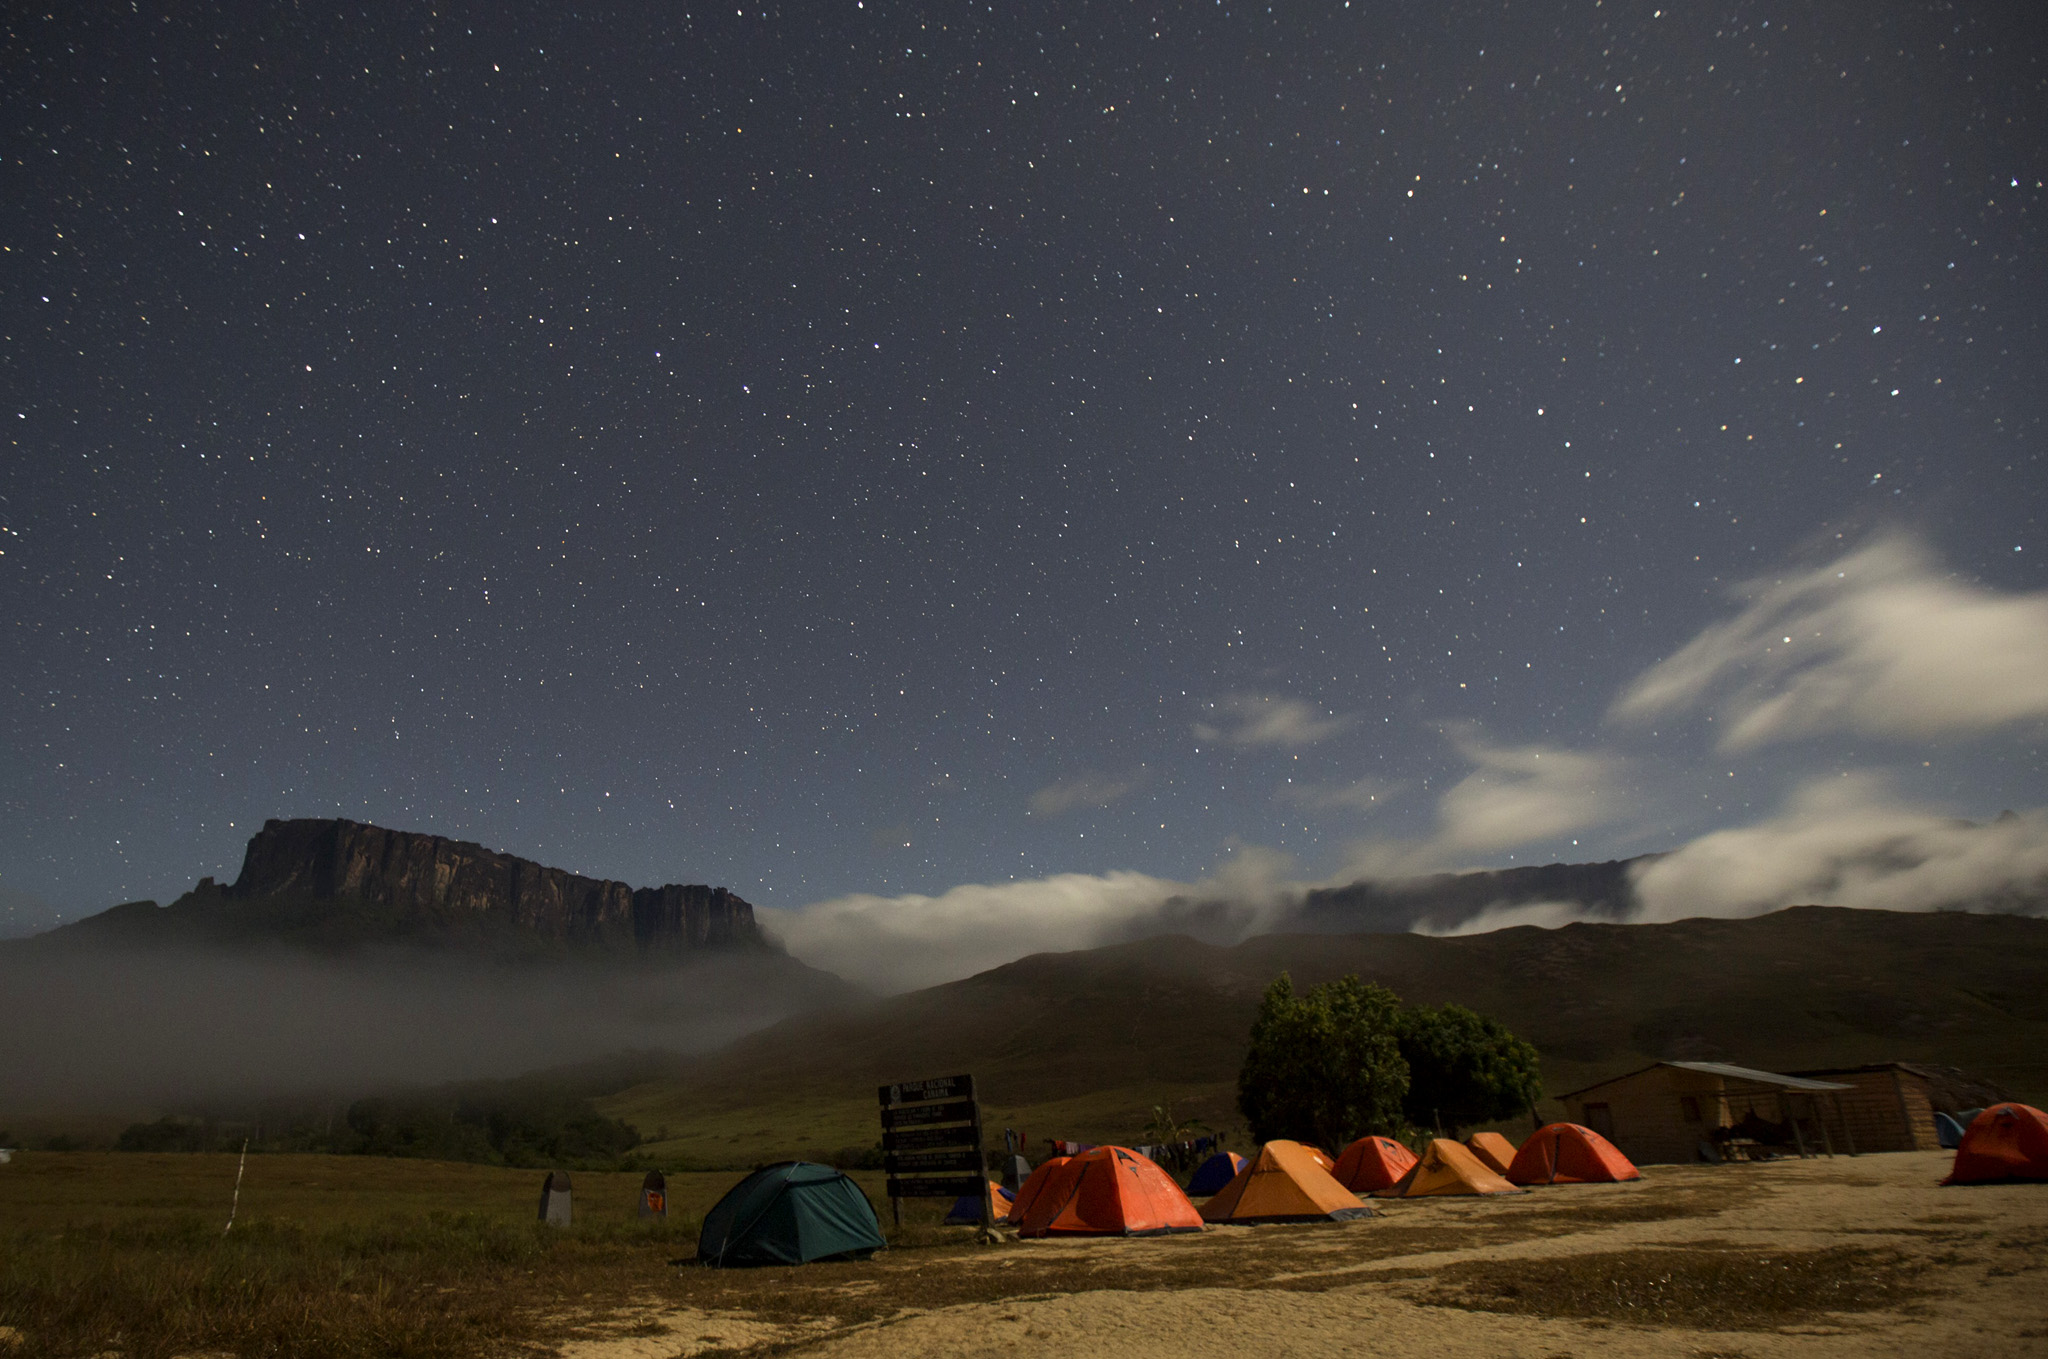 "Kukenan and Roraima mounts are seen from the Tec Camp, near Venezuela's border with Brazil...Kukenan (L) and Roraima mounts are seen from the Tec Camp, near Venezuela's border with Brazil January 14, 2015. A mysterious table-topped mountain on the Venezuela-Brazil border that perplexed 19th century explorers and inspired ""The Lost World"" novel is attracting ever more modern-day adventurers. Once impenetrable to all but the local Pemon indigenous people, now several thousand trekkers a year make the six-day hike across Venezuela's savannah, through rivers, and up a narrow path that scales Mount Roraima's 600-meter cliff-faces. While that is a help to Venezuela's tottering tourism industry and brings revenues to local communities, it is also scattering a prehistoric landscape with unwanted litter.    REUTERS/Carlos Garcia Rawlins"